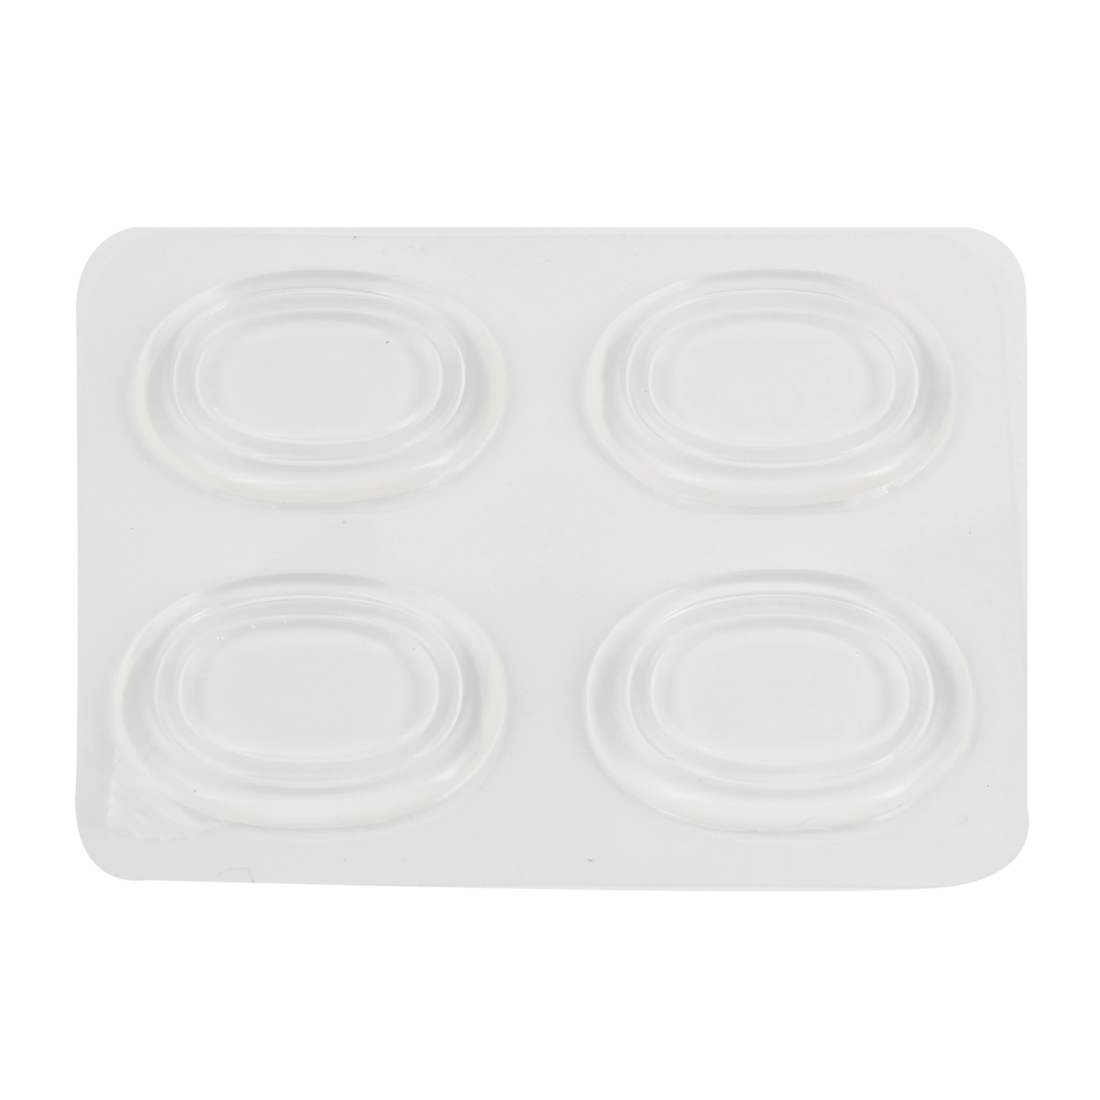 4 Pieces Clear Soft Gel Shoes Cushions Back Pads Replacement for Lady